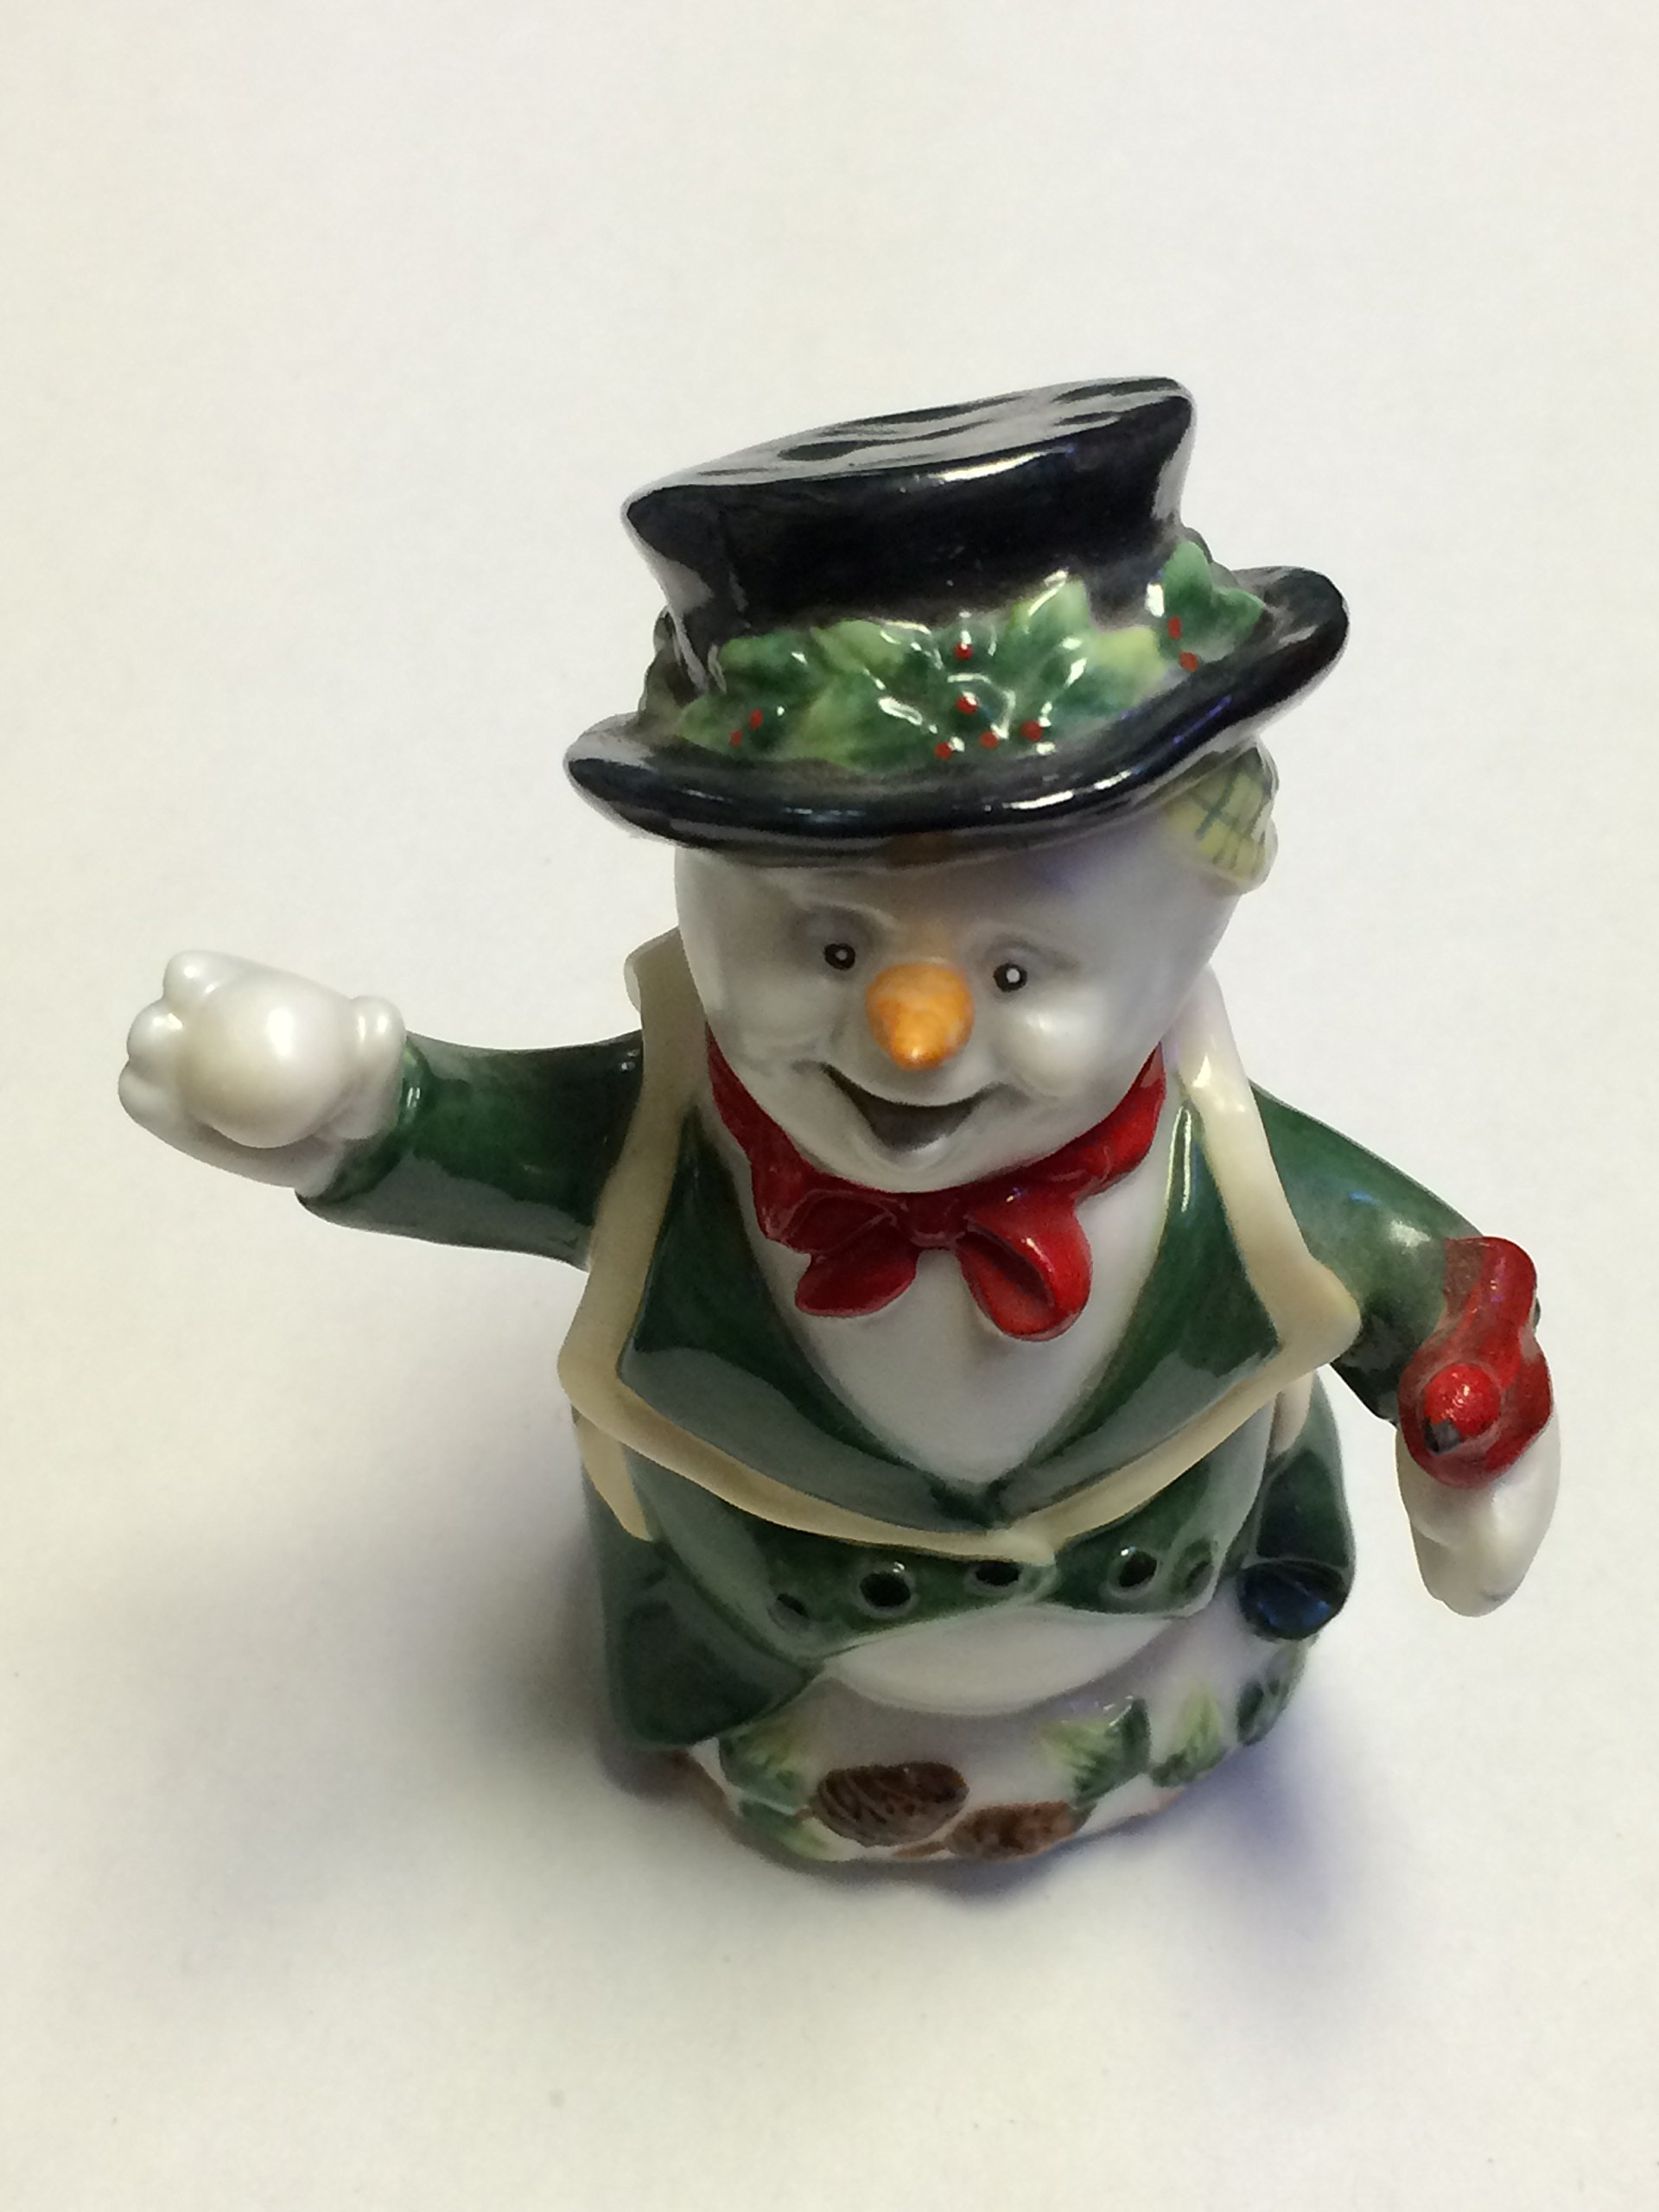 Department 56 Snowman Candle Snuffer #56.50064